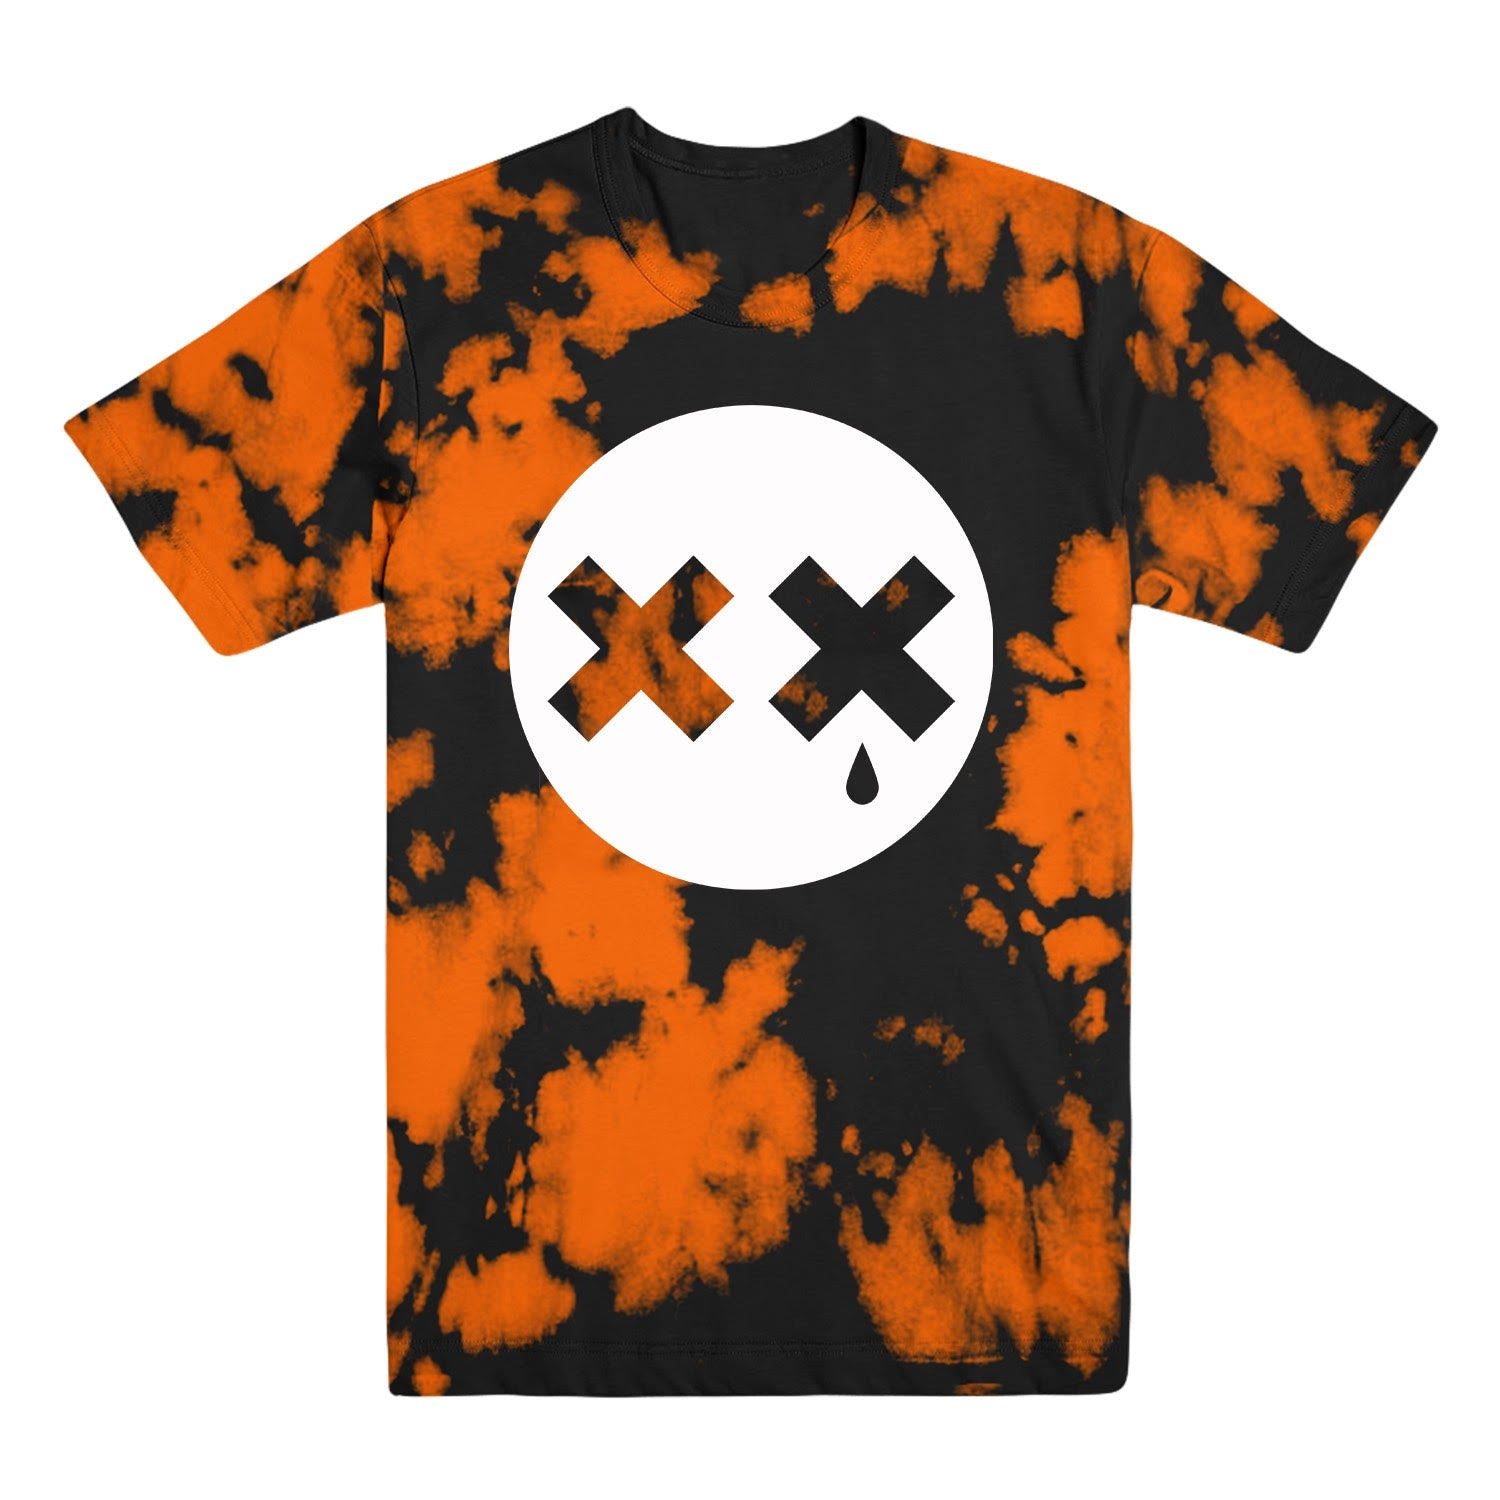 Spooky LOGO Tee (Limited Edition) - SADBOYCREW